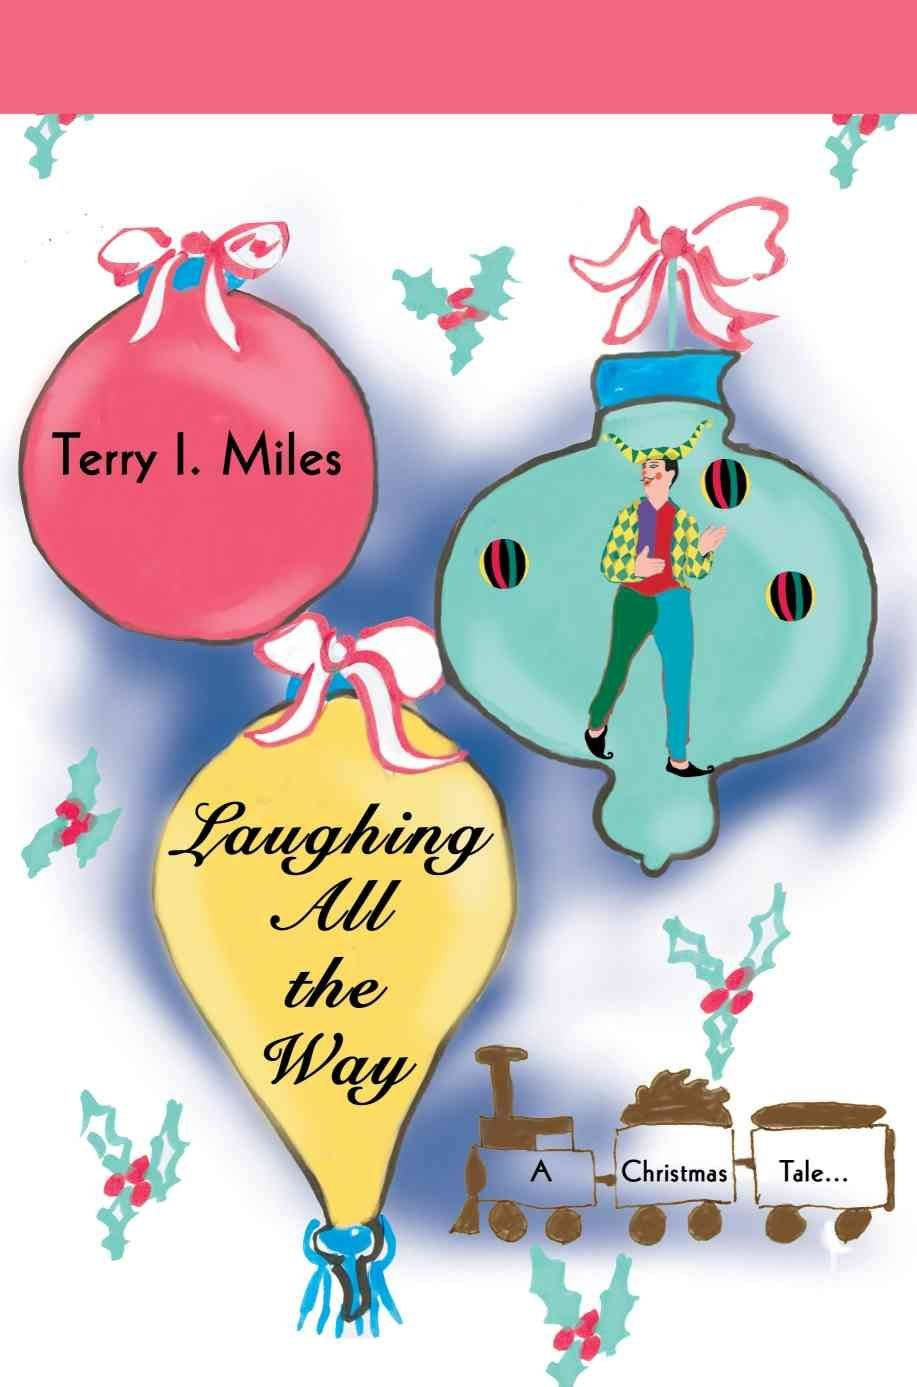 Laughing All the Way - Terry I Miles